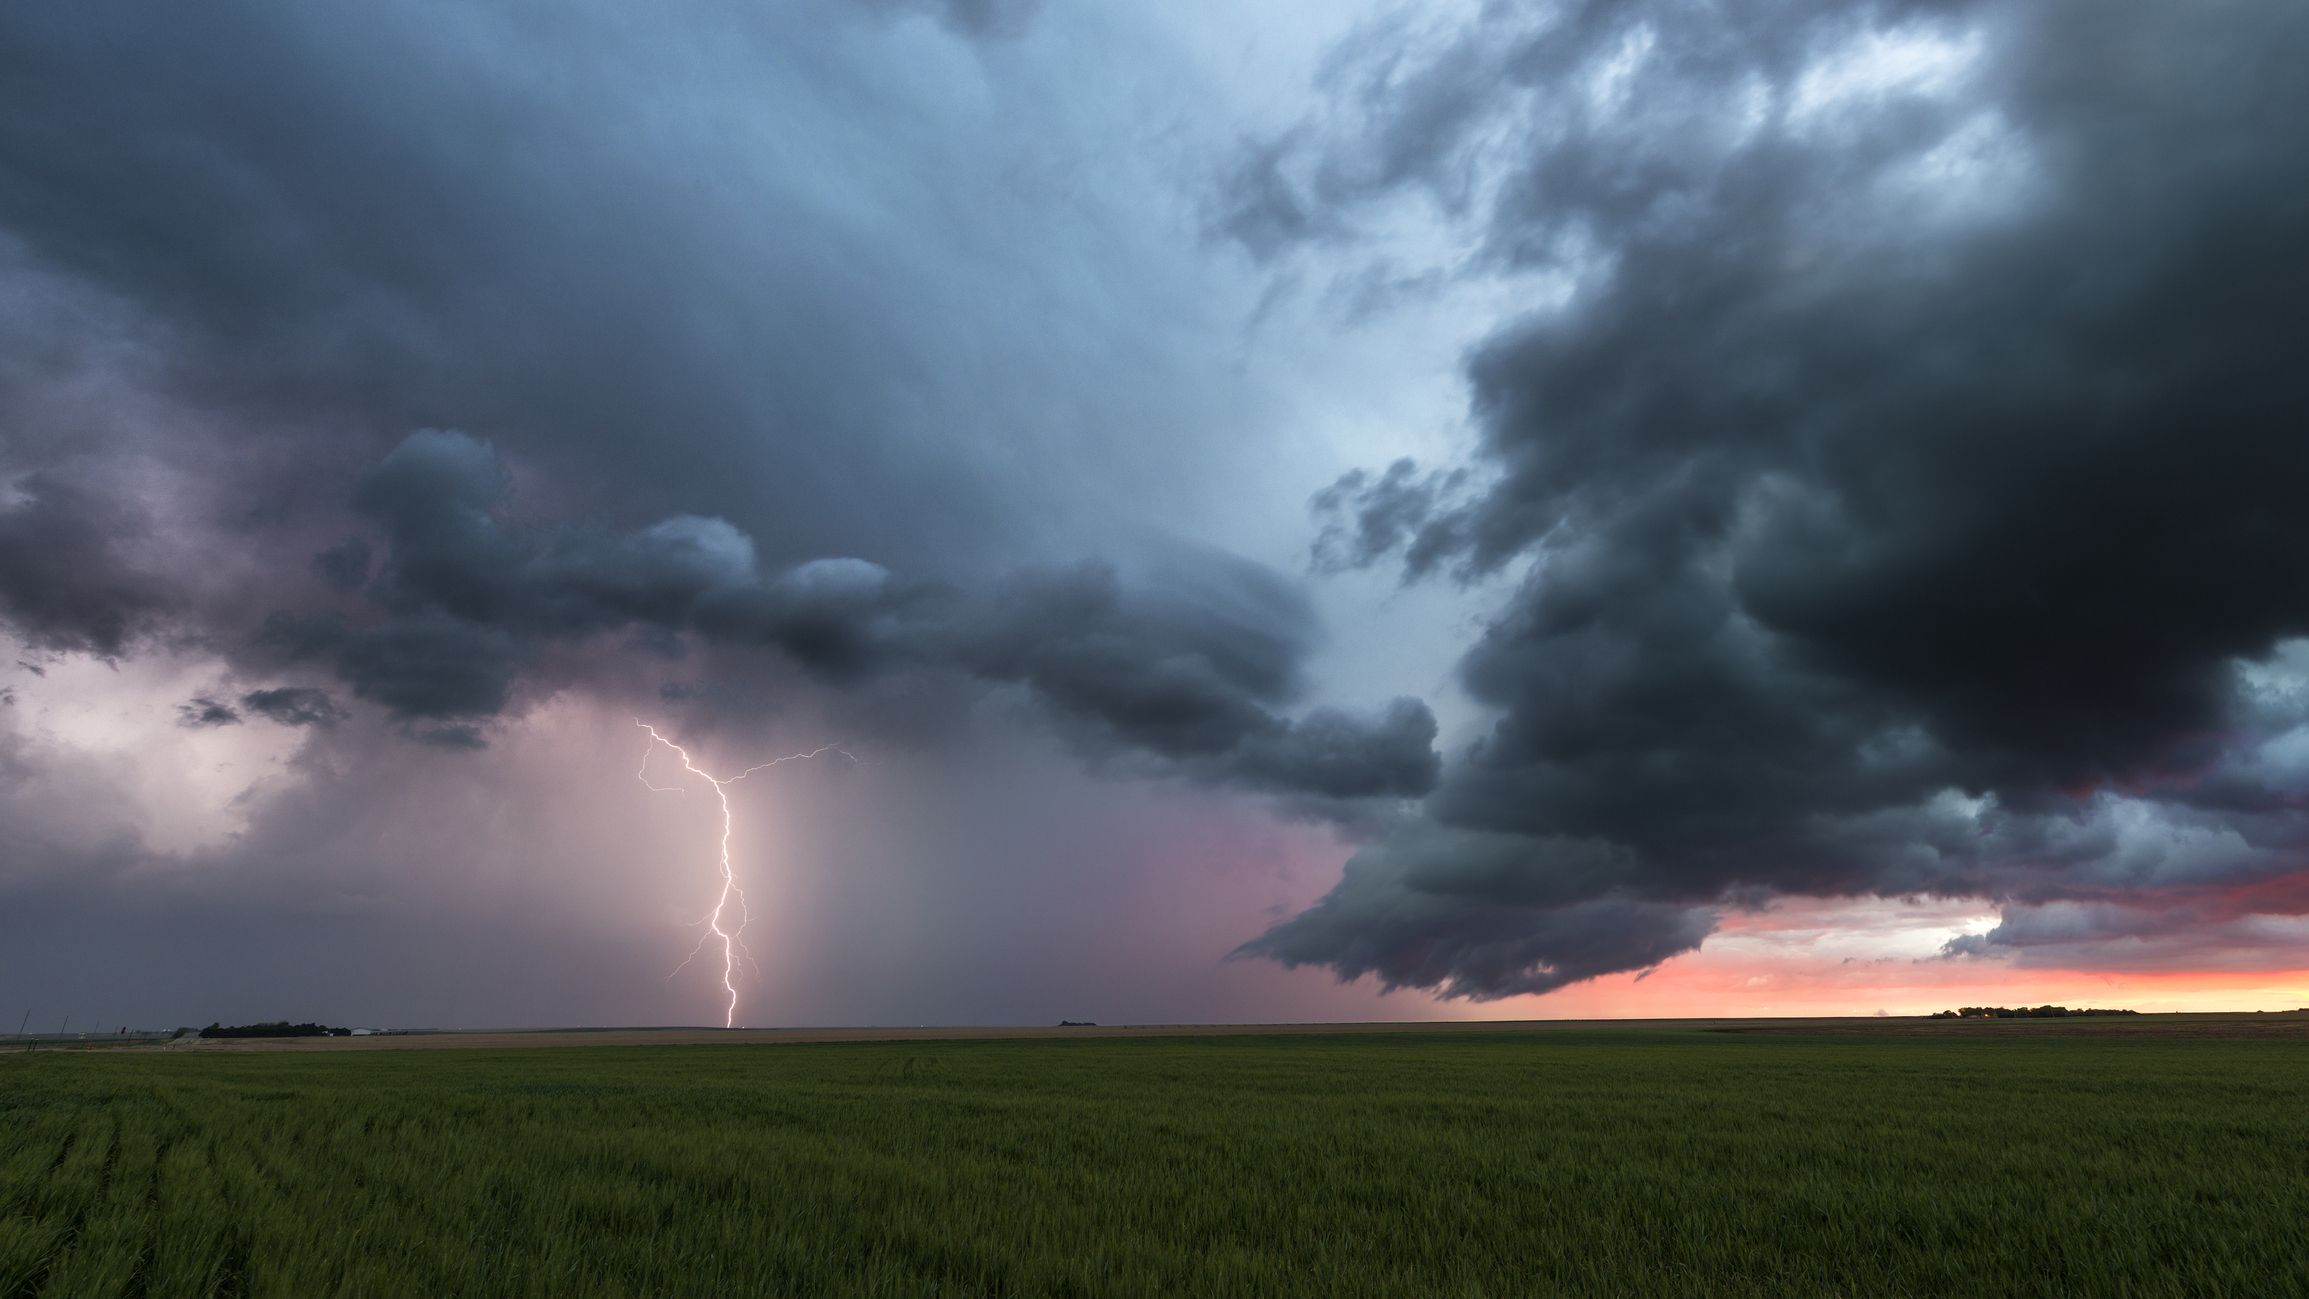 15 Things You Should Always Do/Never Do If Caught Outside During a Thunderstorm